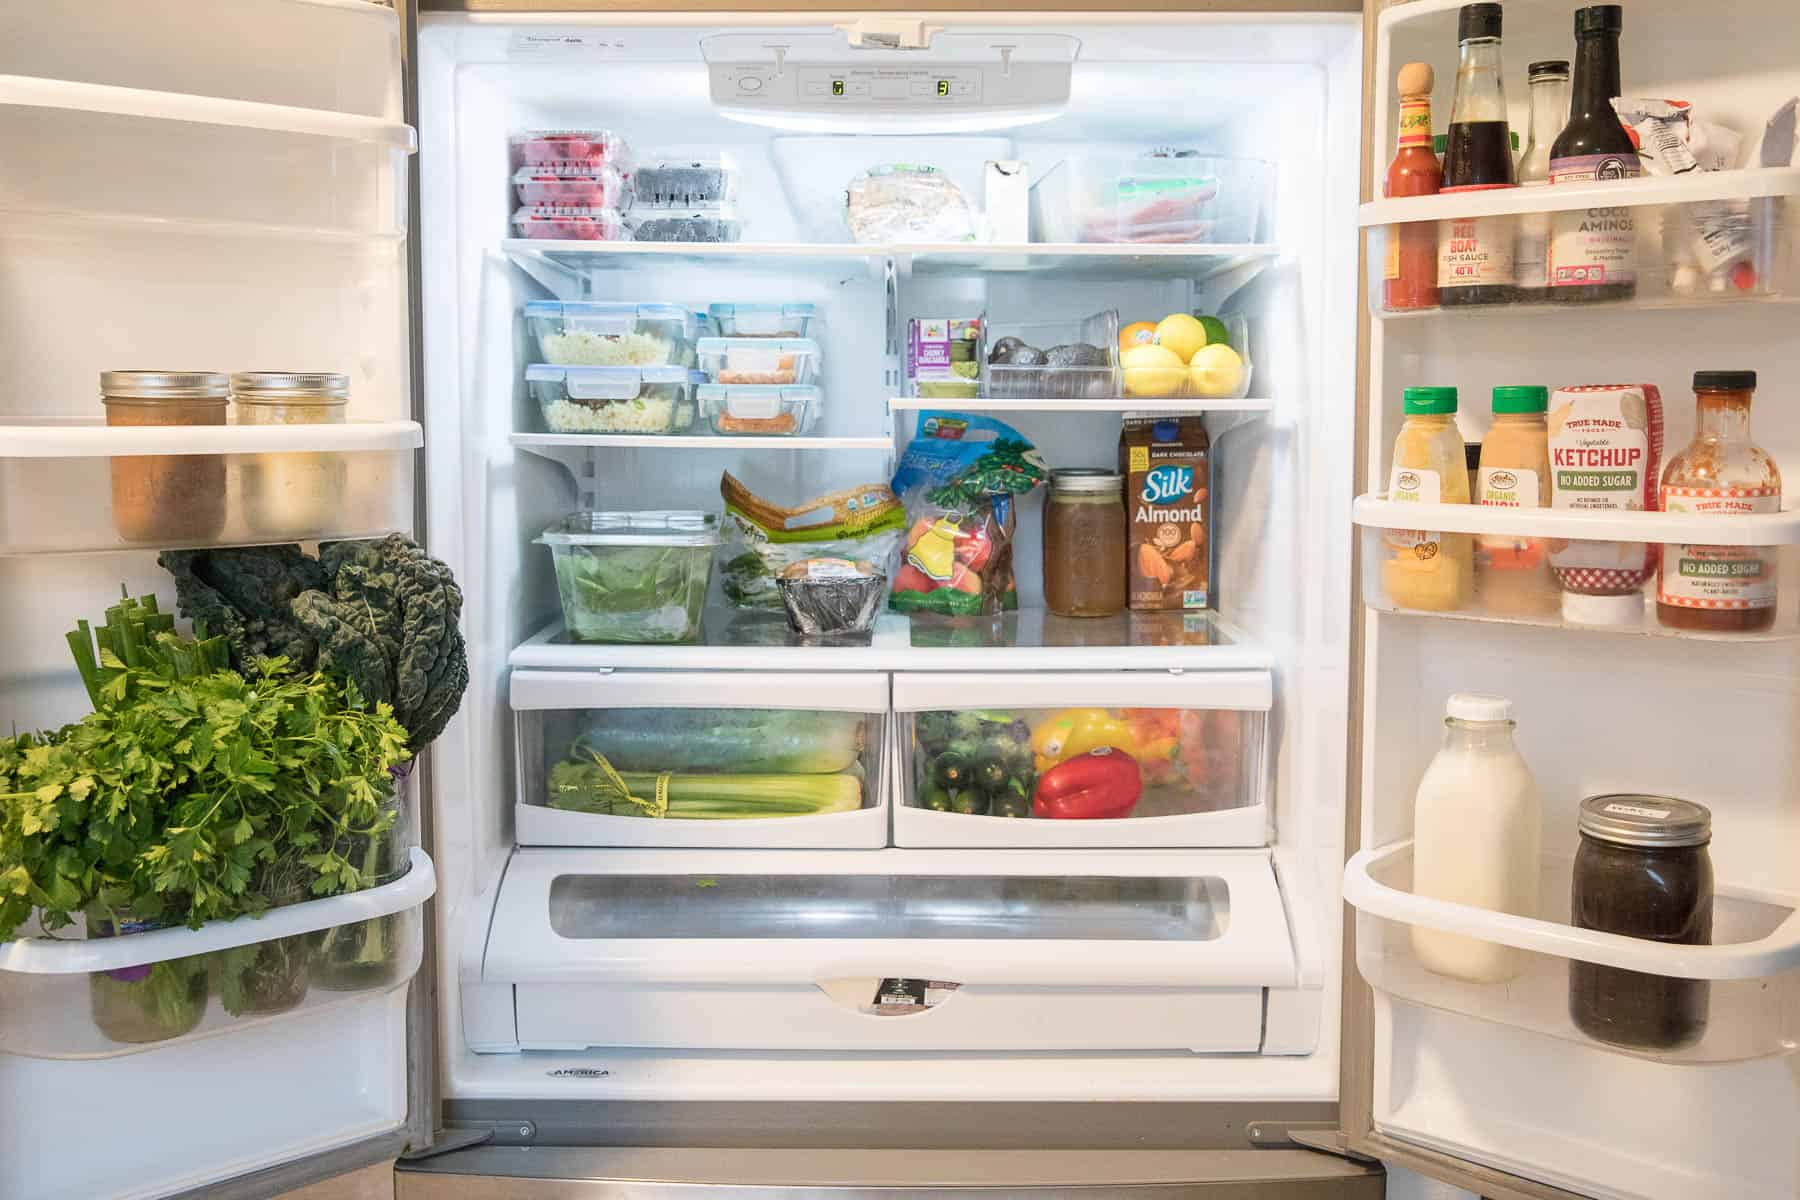 organized keto refrigerator with produce, meal prep, condiments